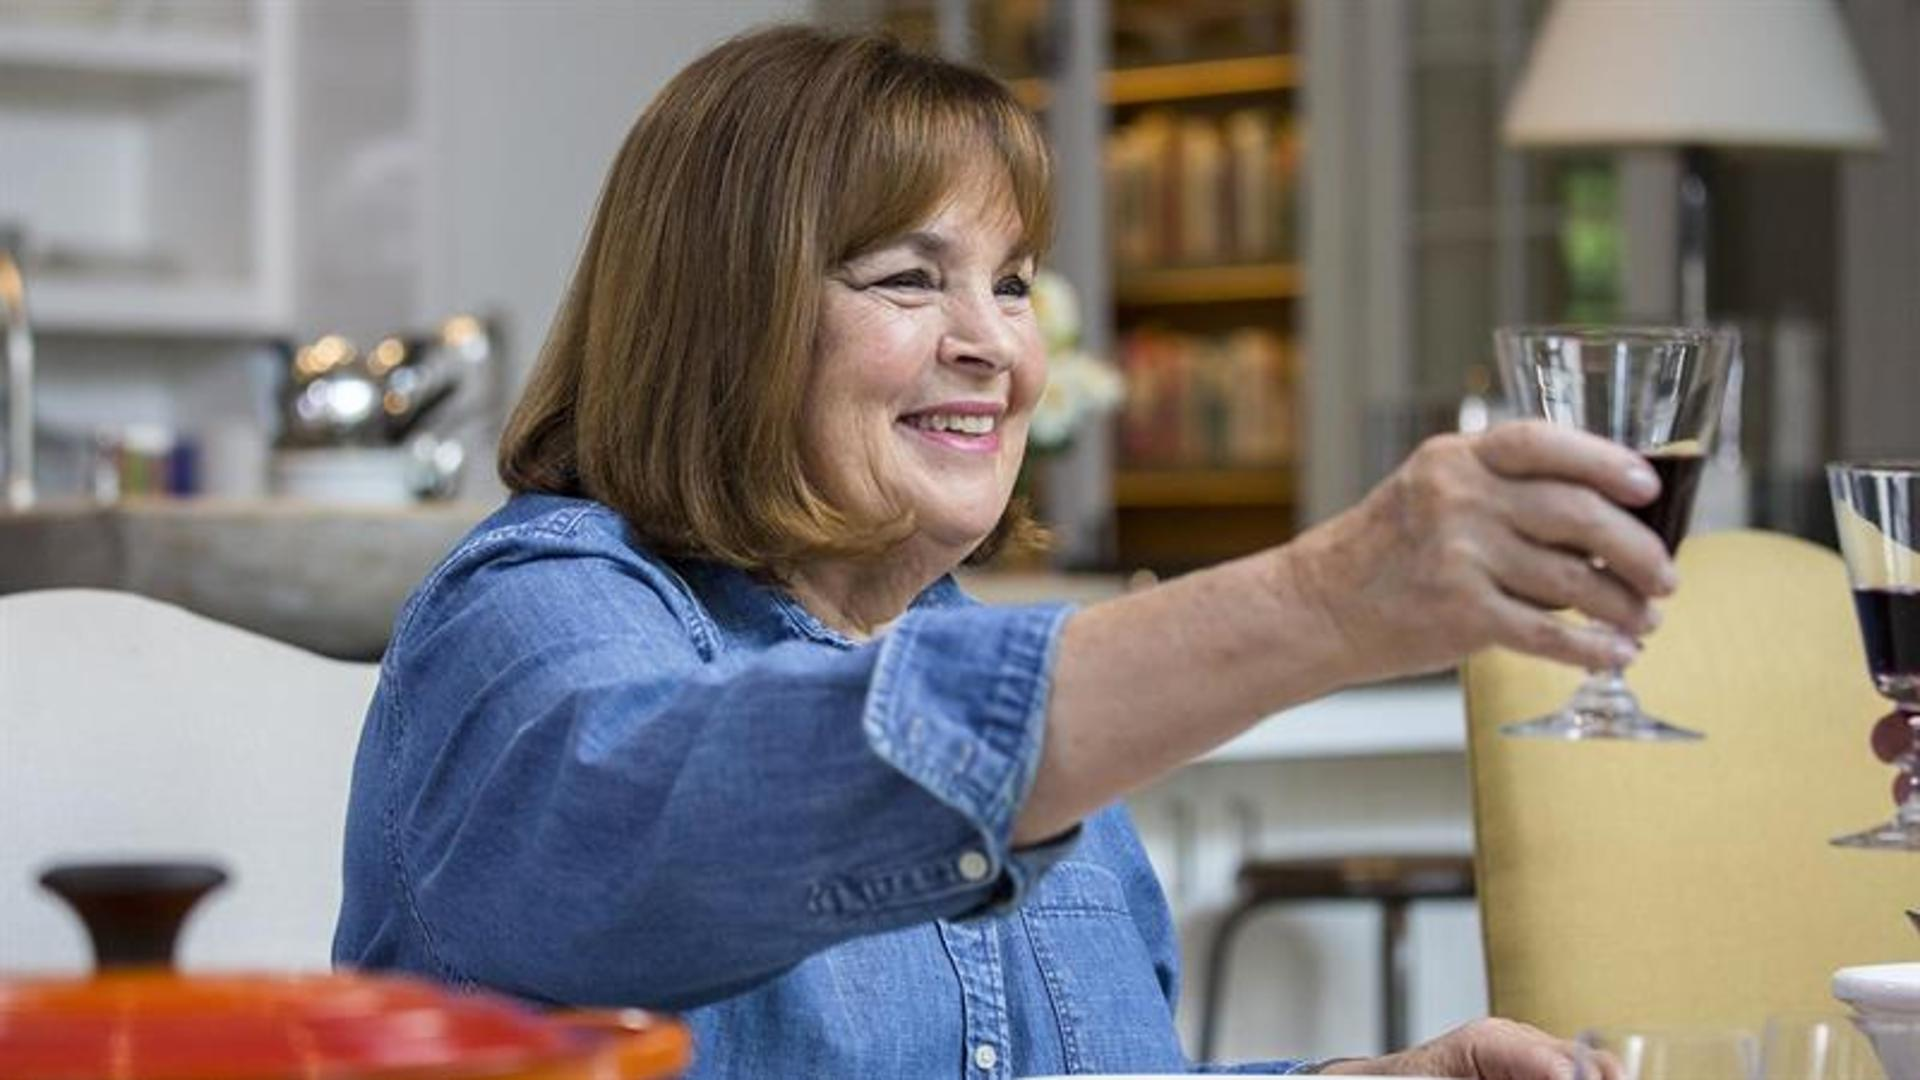 Ina Garten reveals her 'all-time go-to dinner' and it's not crispy mustard chicken